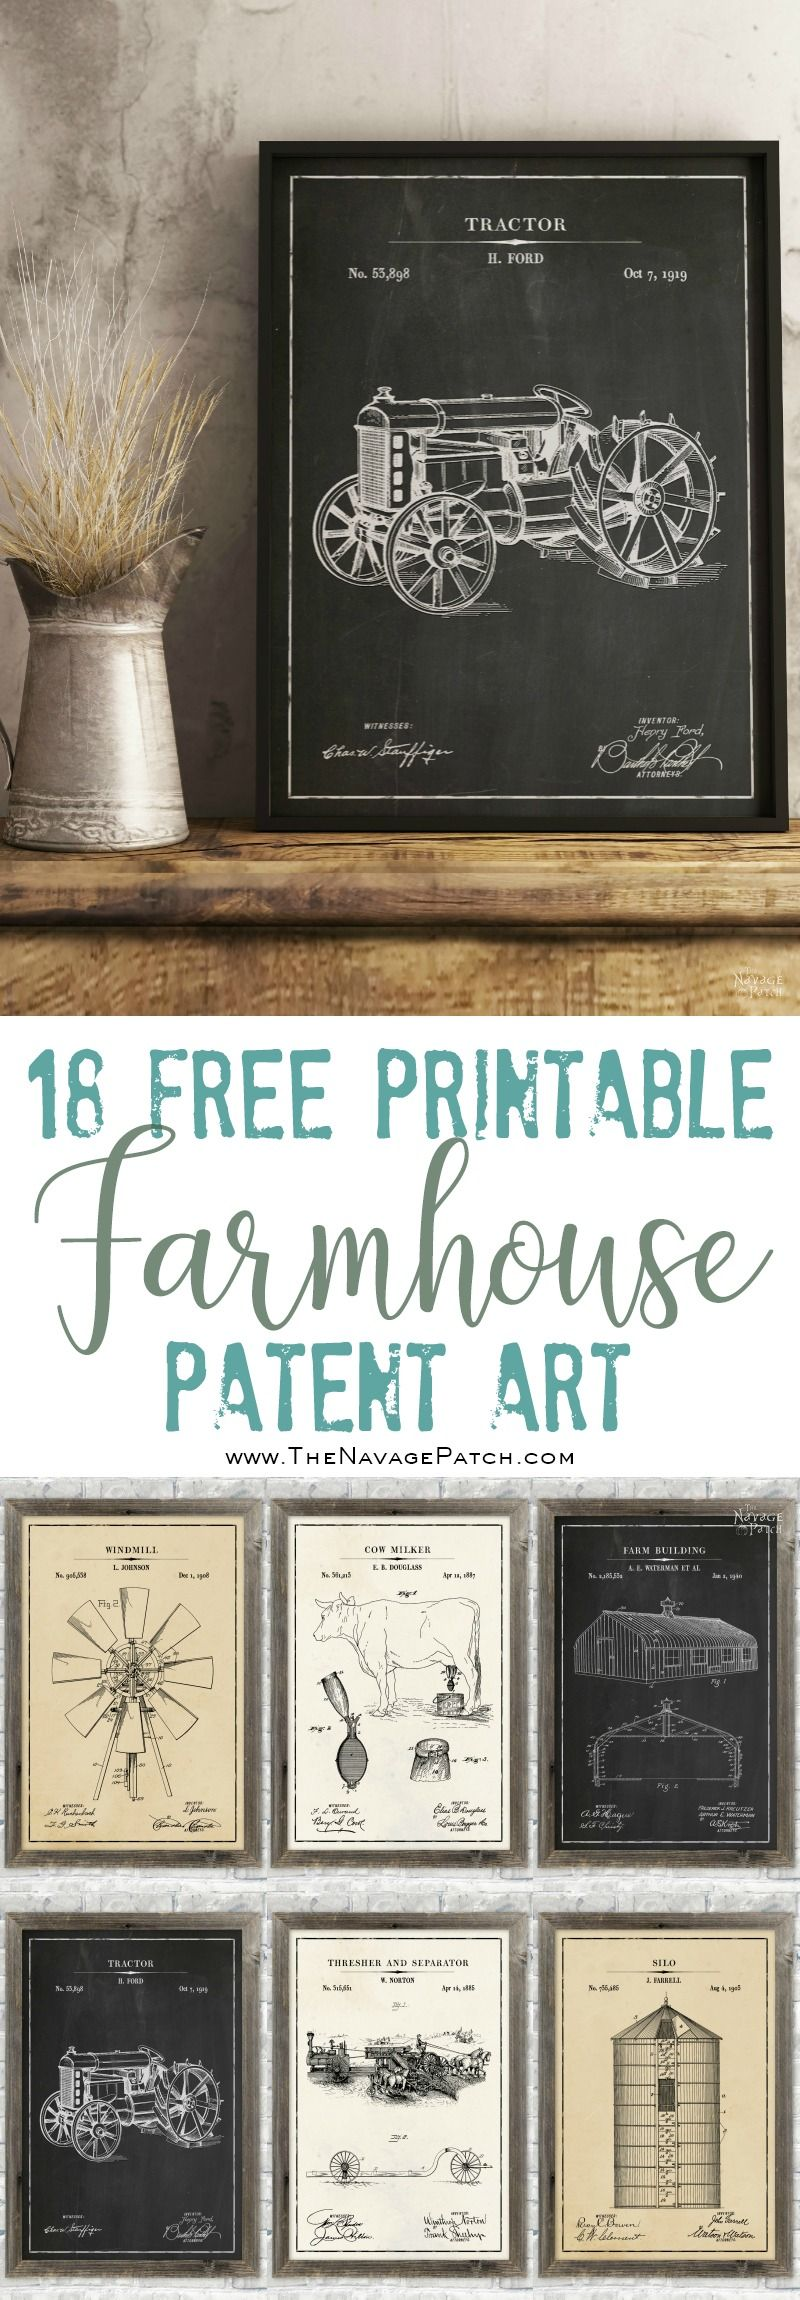 Free Farmhouse Patent Art | Free printable Farmhouse Patent Art Posters | Free printable Vintage Olive Branch Illustrations | Free printable phonetic alphabet wall art | Free printable Morse code alphabet wall art | Free farmhouse decor | Engineering print vs poster print | Free printable blueprints | DIY wall decoration | Free botanical prints | #TheNavagePatch #FreePrintable #PatentArt #Blueprint #VintagePrintable #Gallerywall | TheNavagePatch.com